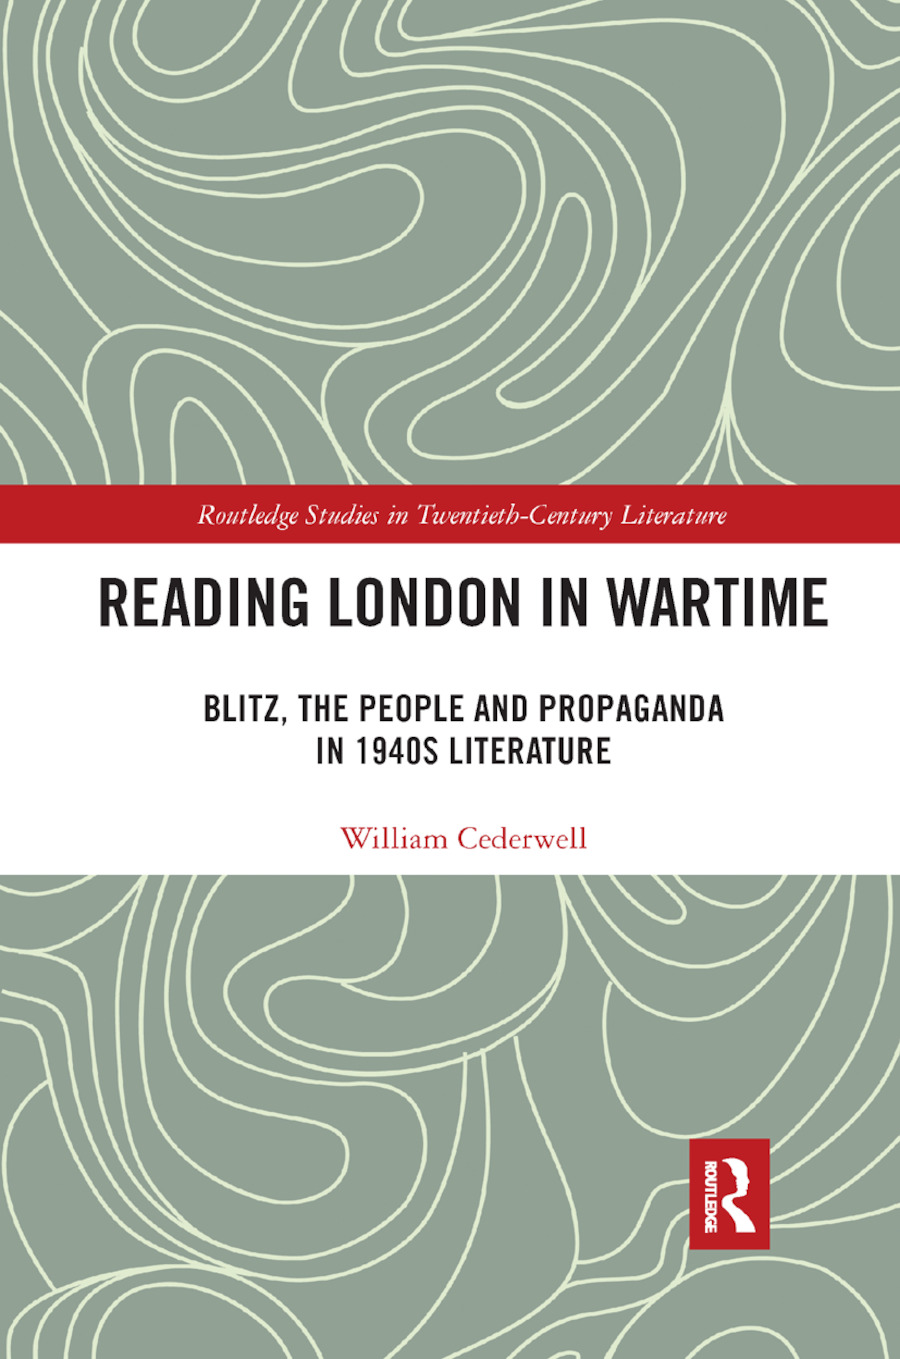 Reading London in Wartime